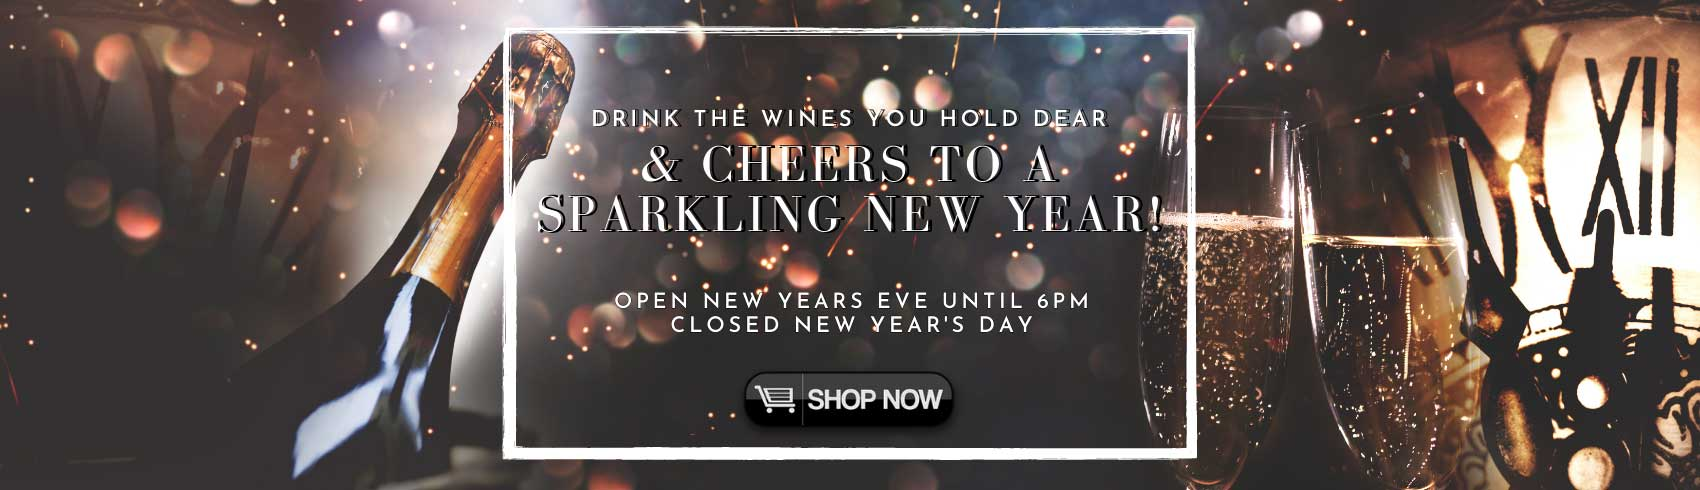 cheers-the-sparkling-new-year-2021.jpg